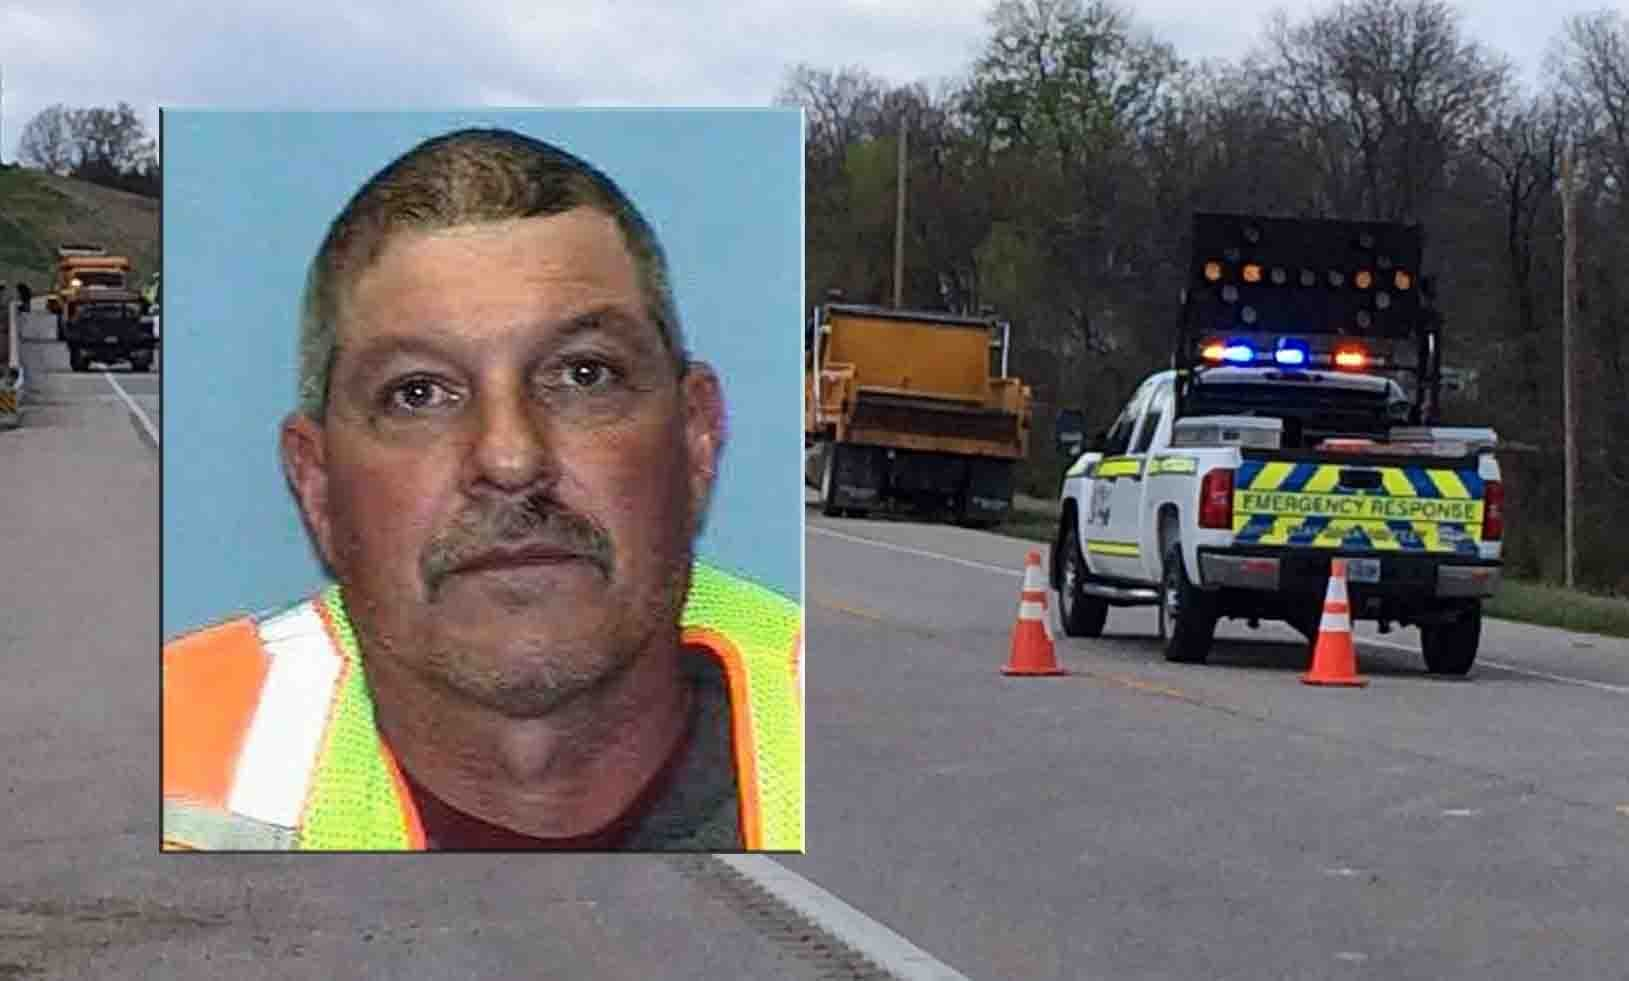 Lyndon D. Ebker, a longtime MoDOT worker was struck and killed today in the line of duty on Rte. 100 in Franklin County.